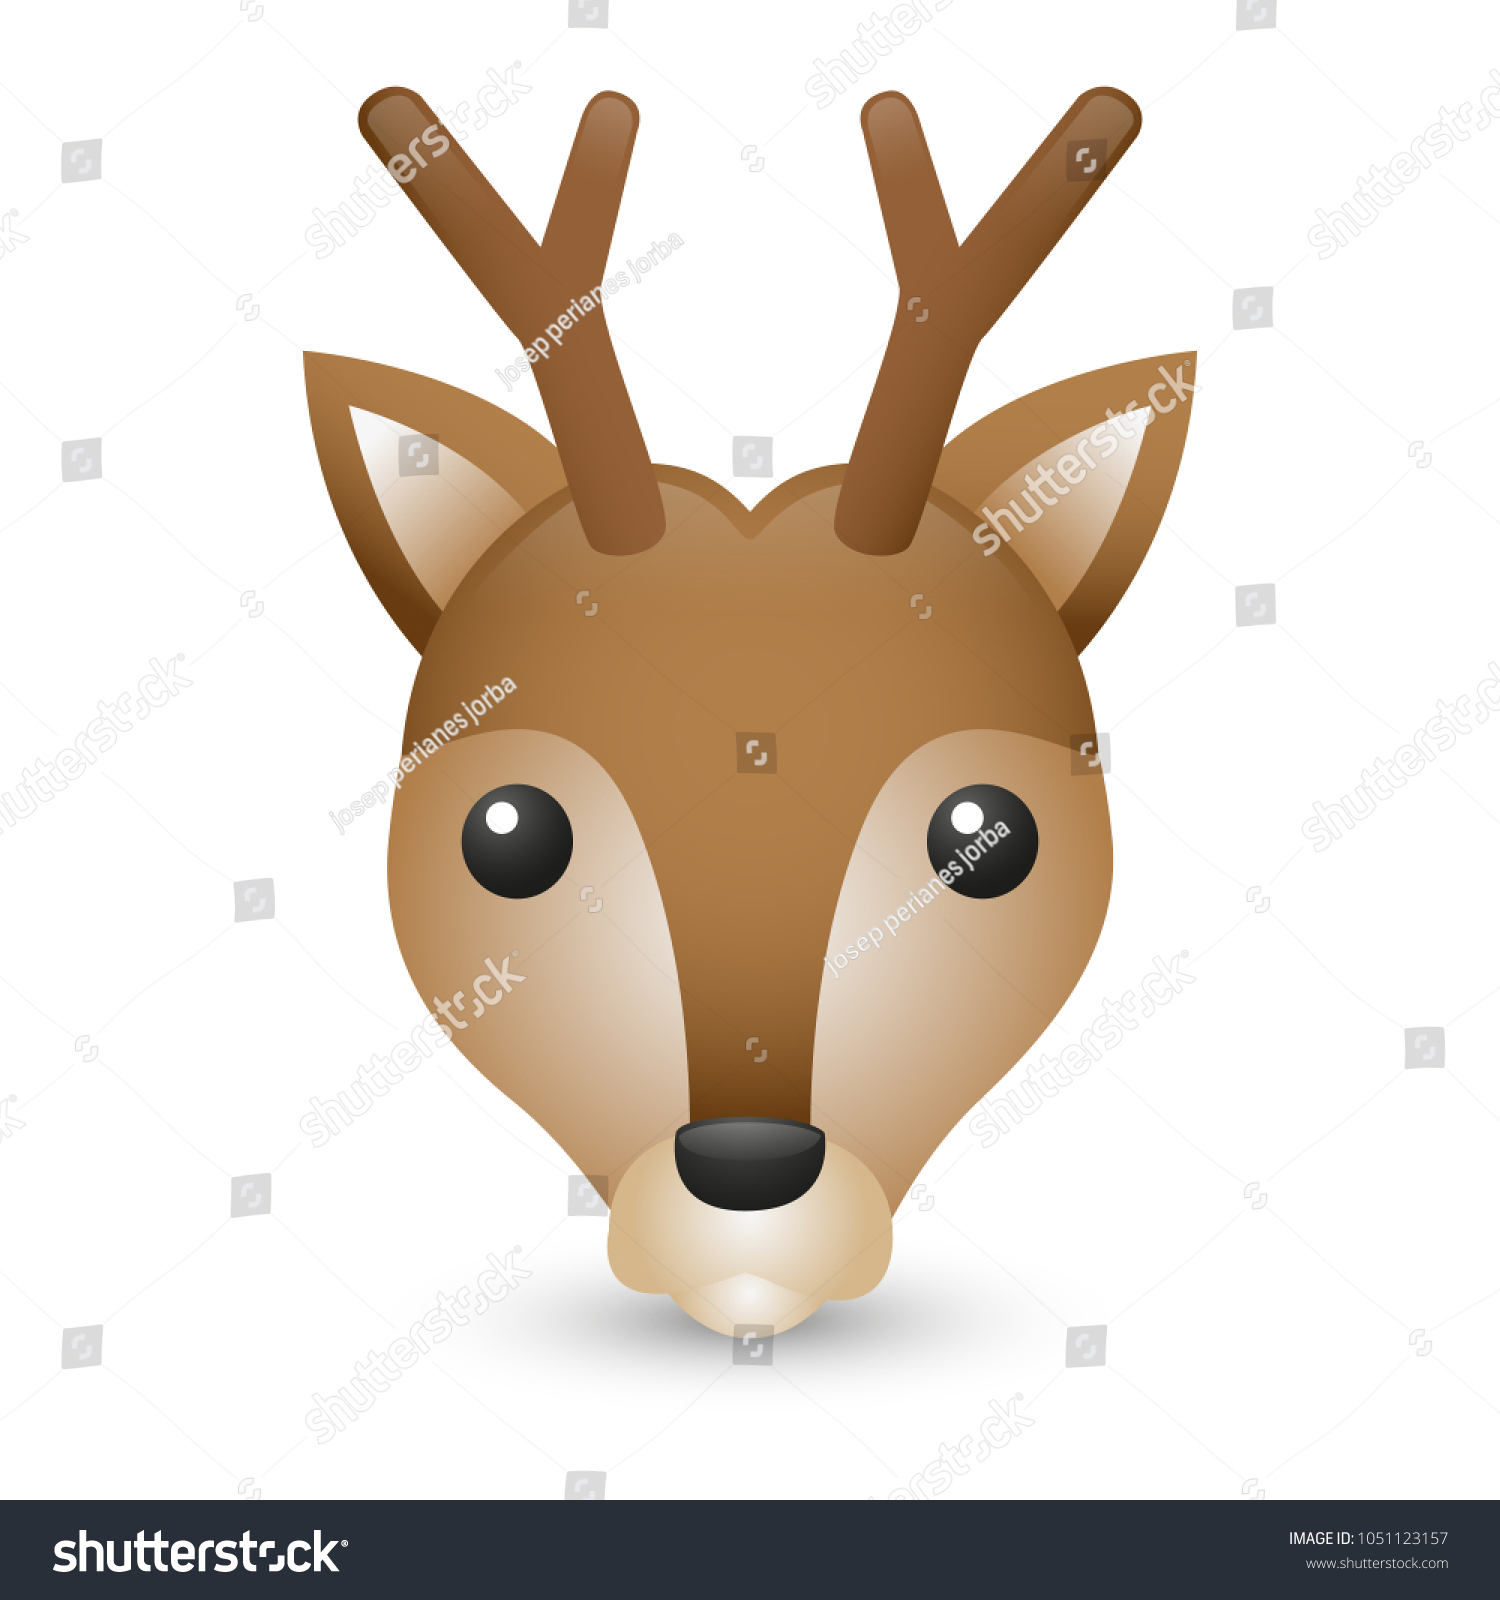 Deer Forest Mountain Animals Emoji Illustration Stock Vector